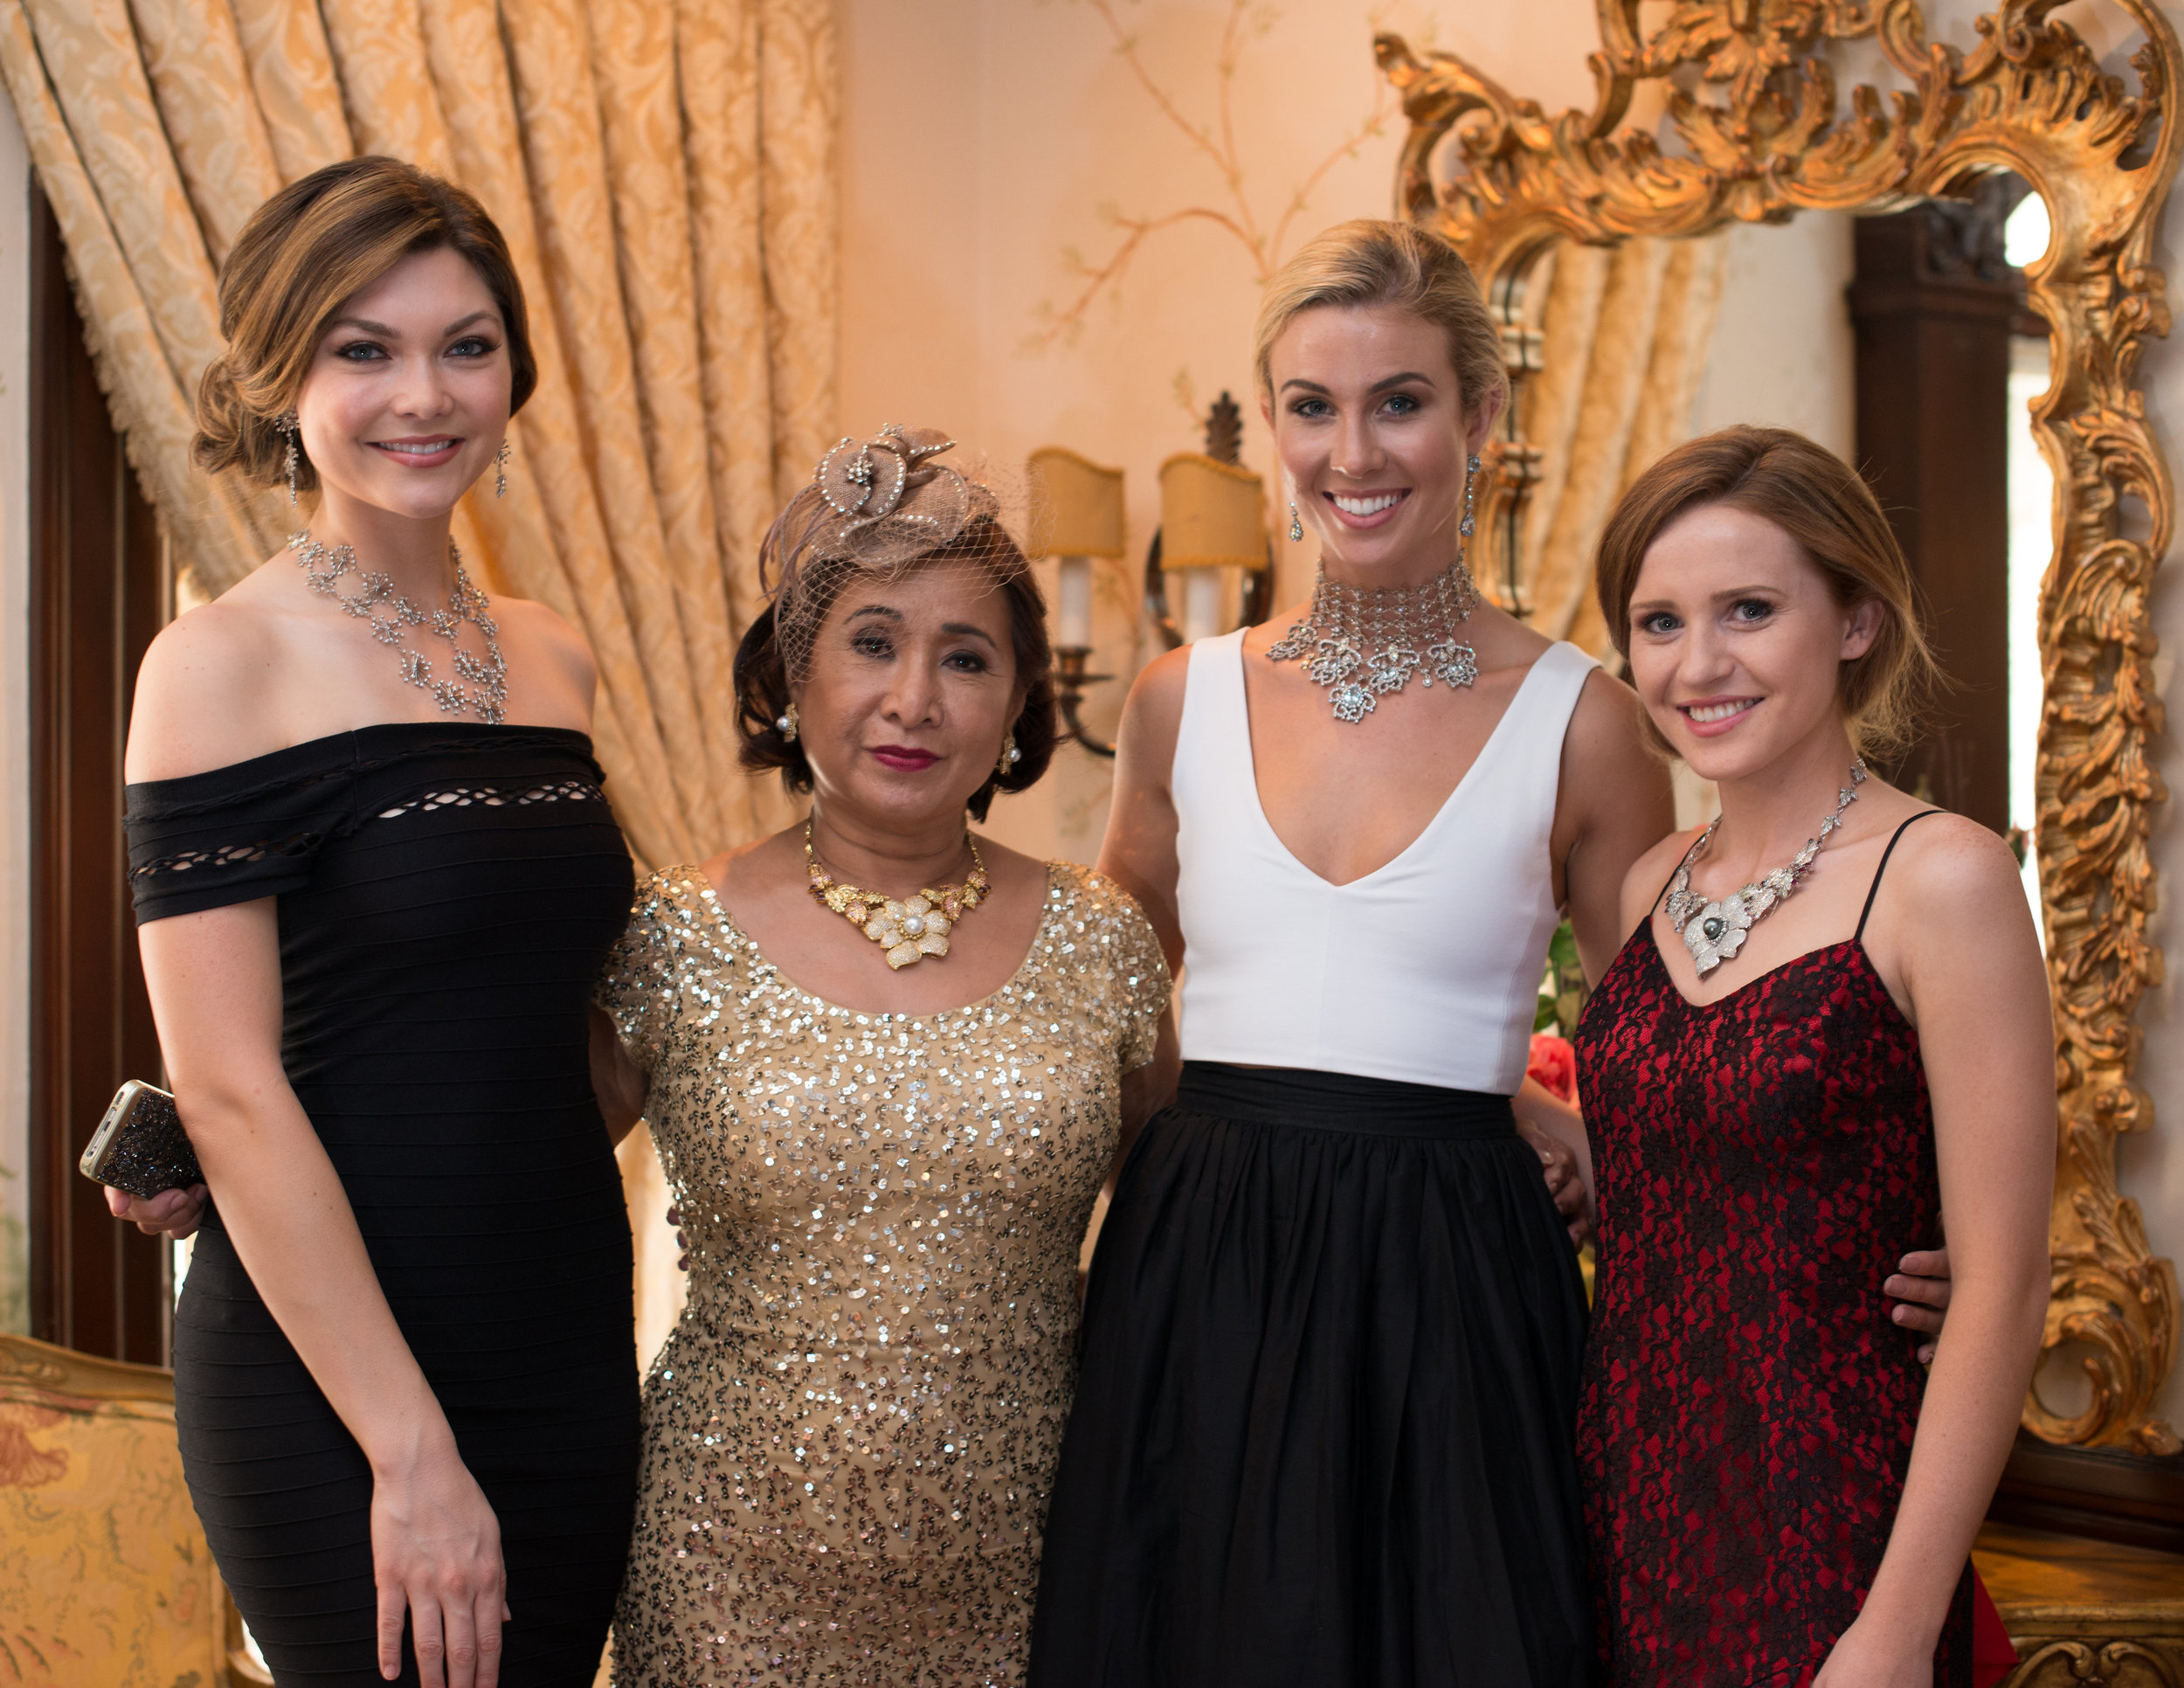 Ramona Haar with models (Miss Earth 2015, Miss Earth 2014, and another model)